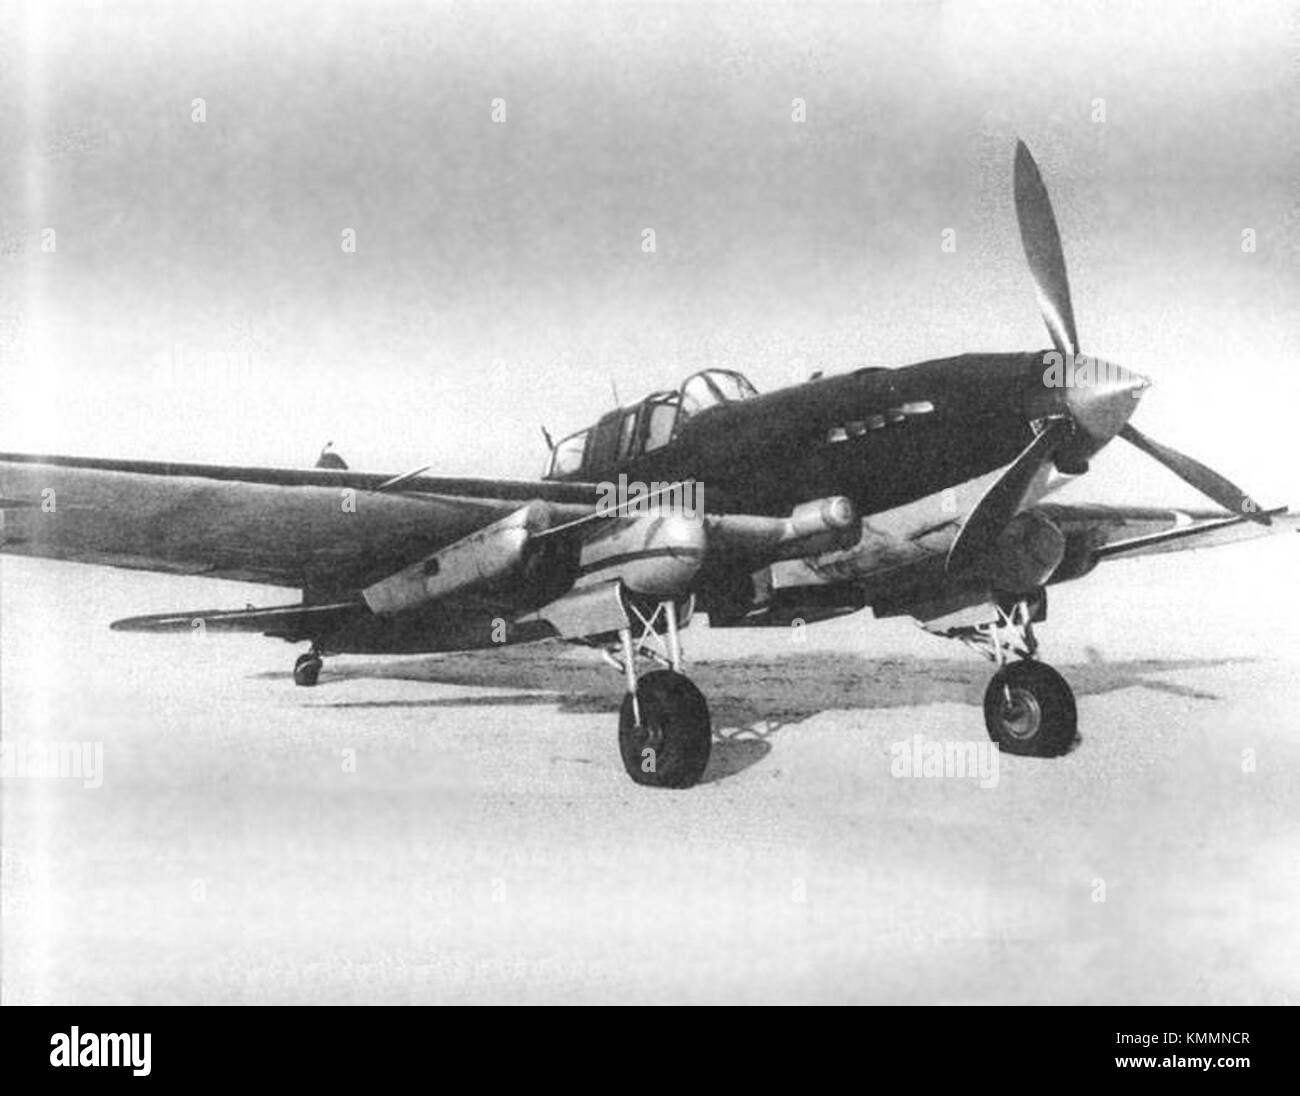 Il2 2 ns37 machine cannon moscow march 1943 Stock Photo